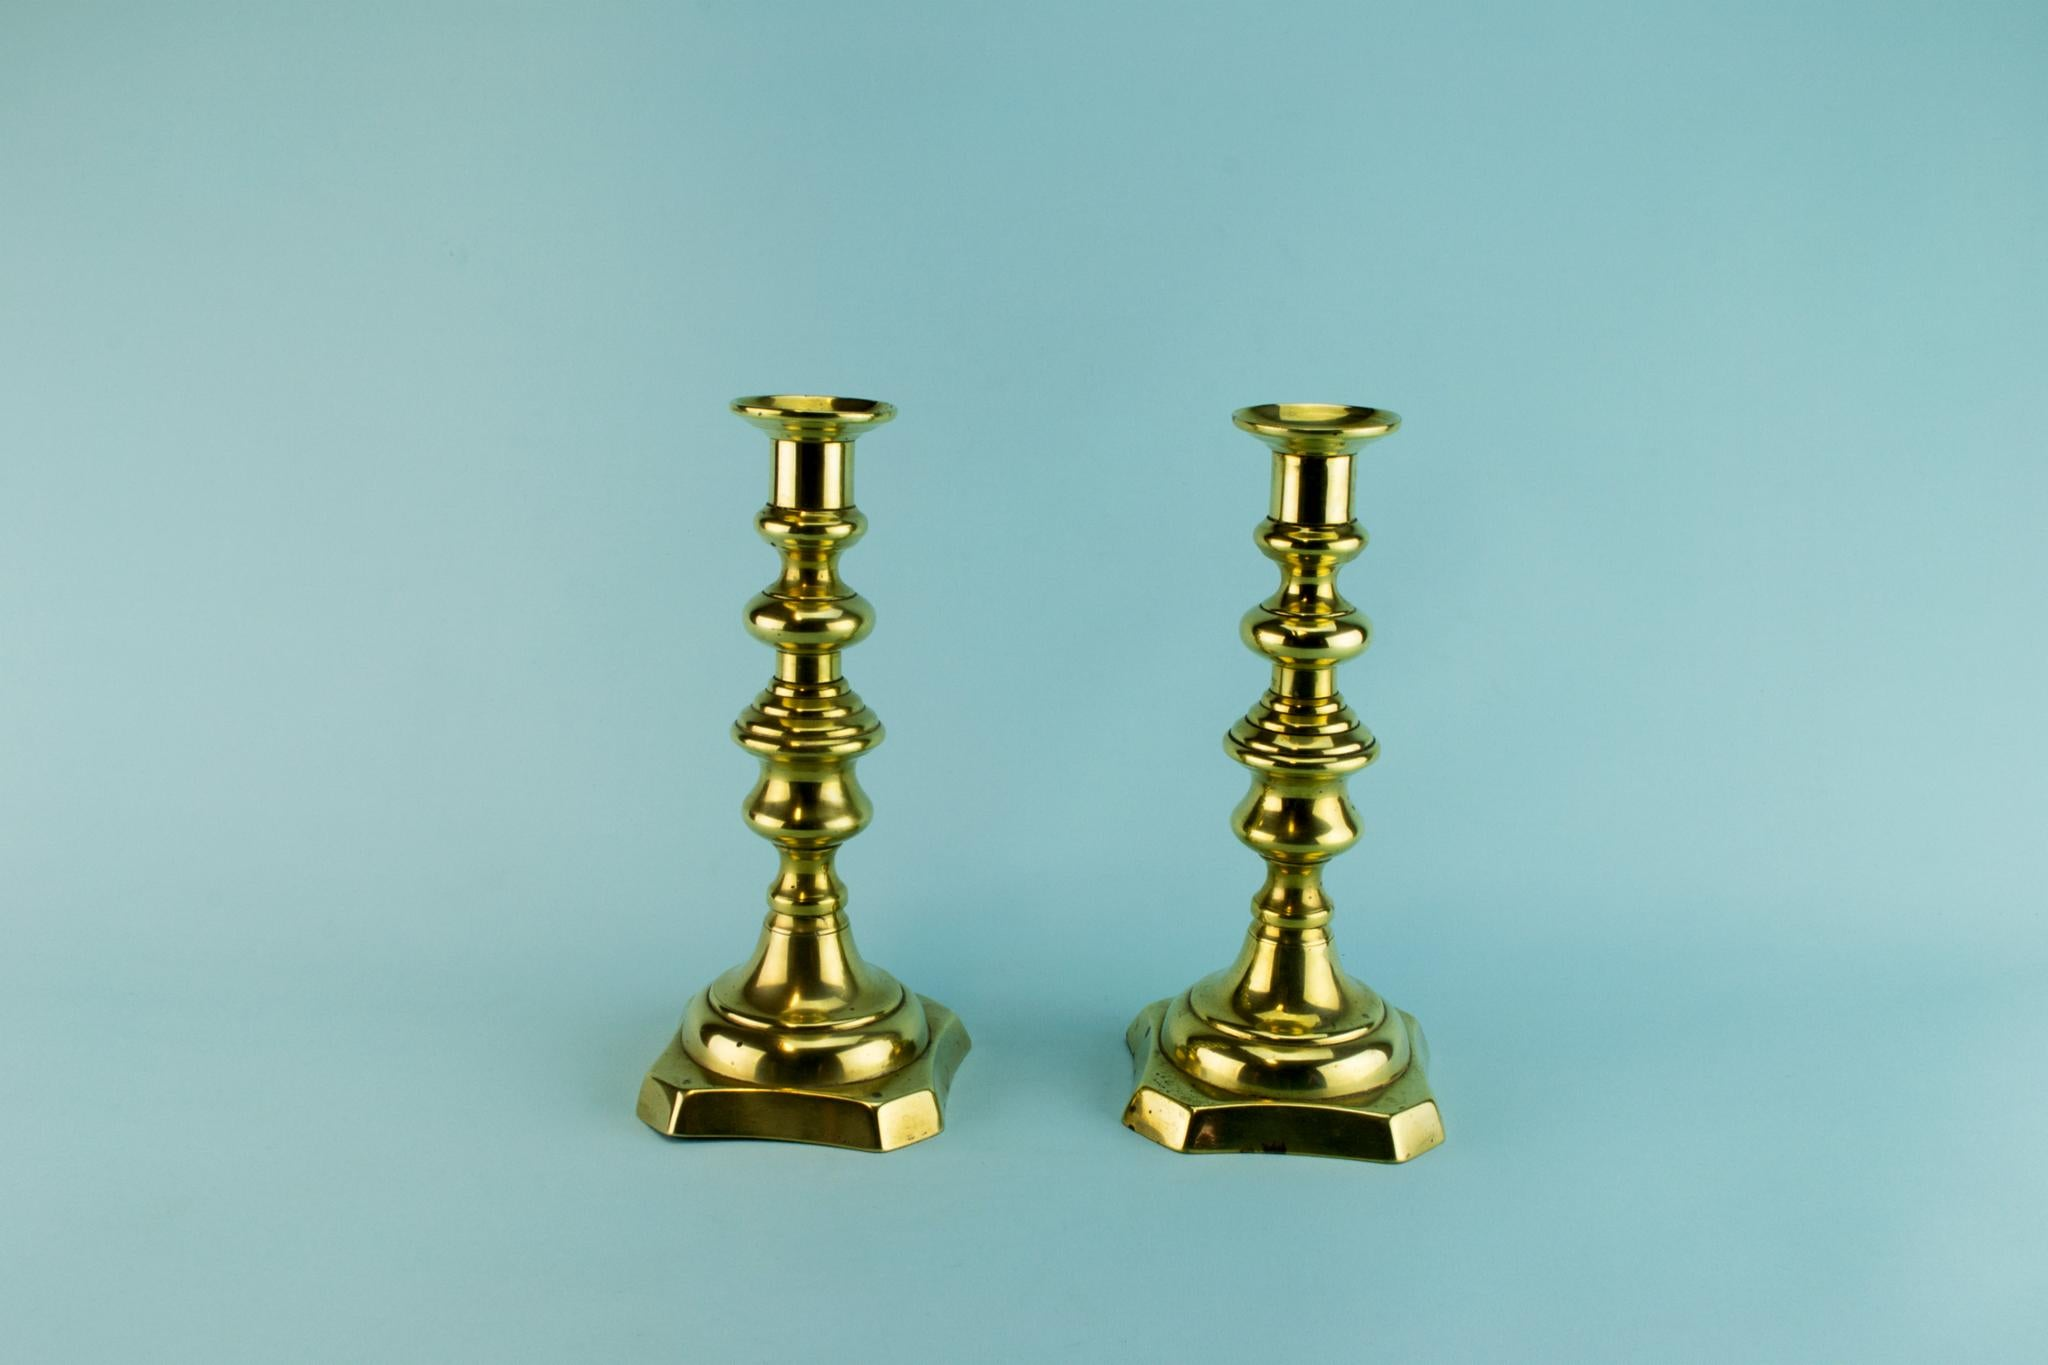 2 Brass Candlesticks, English Early 1800s